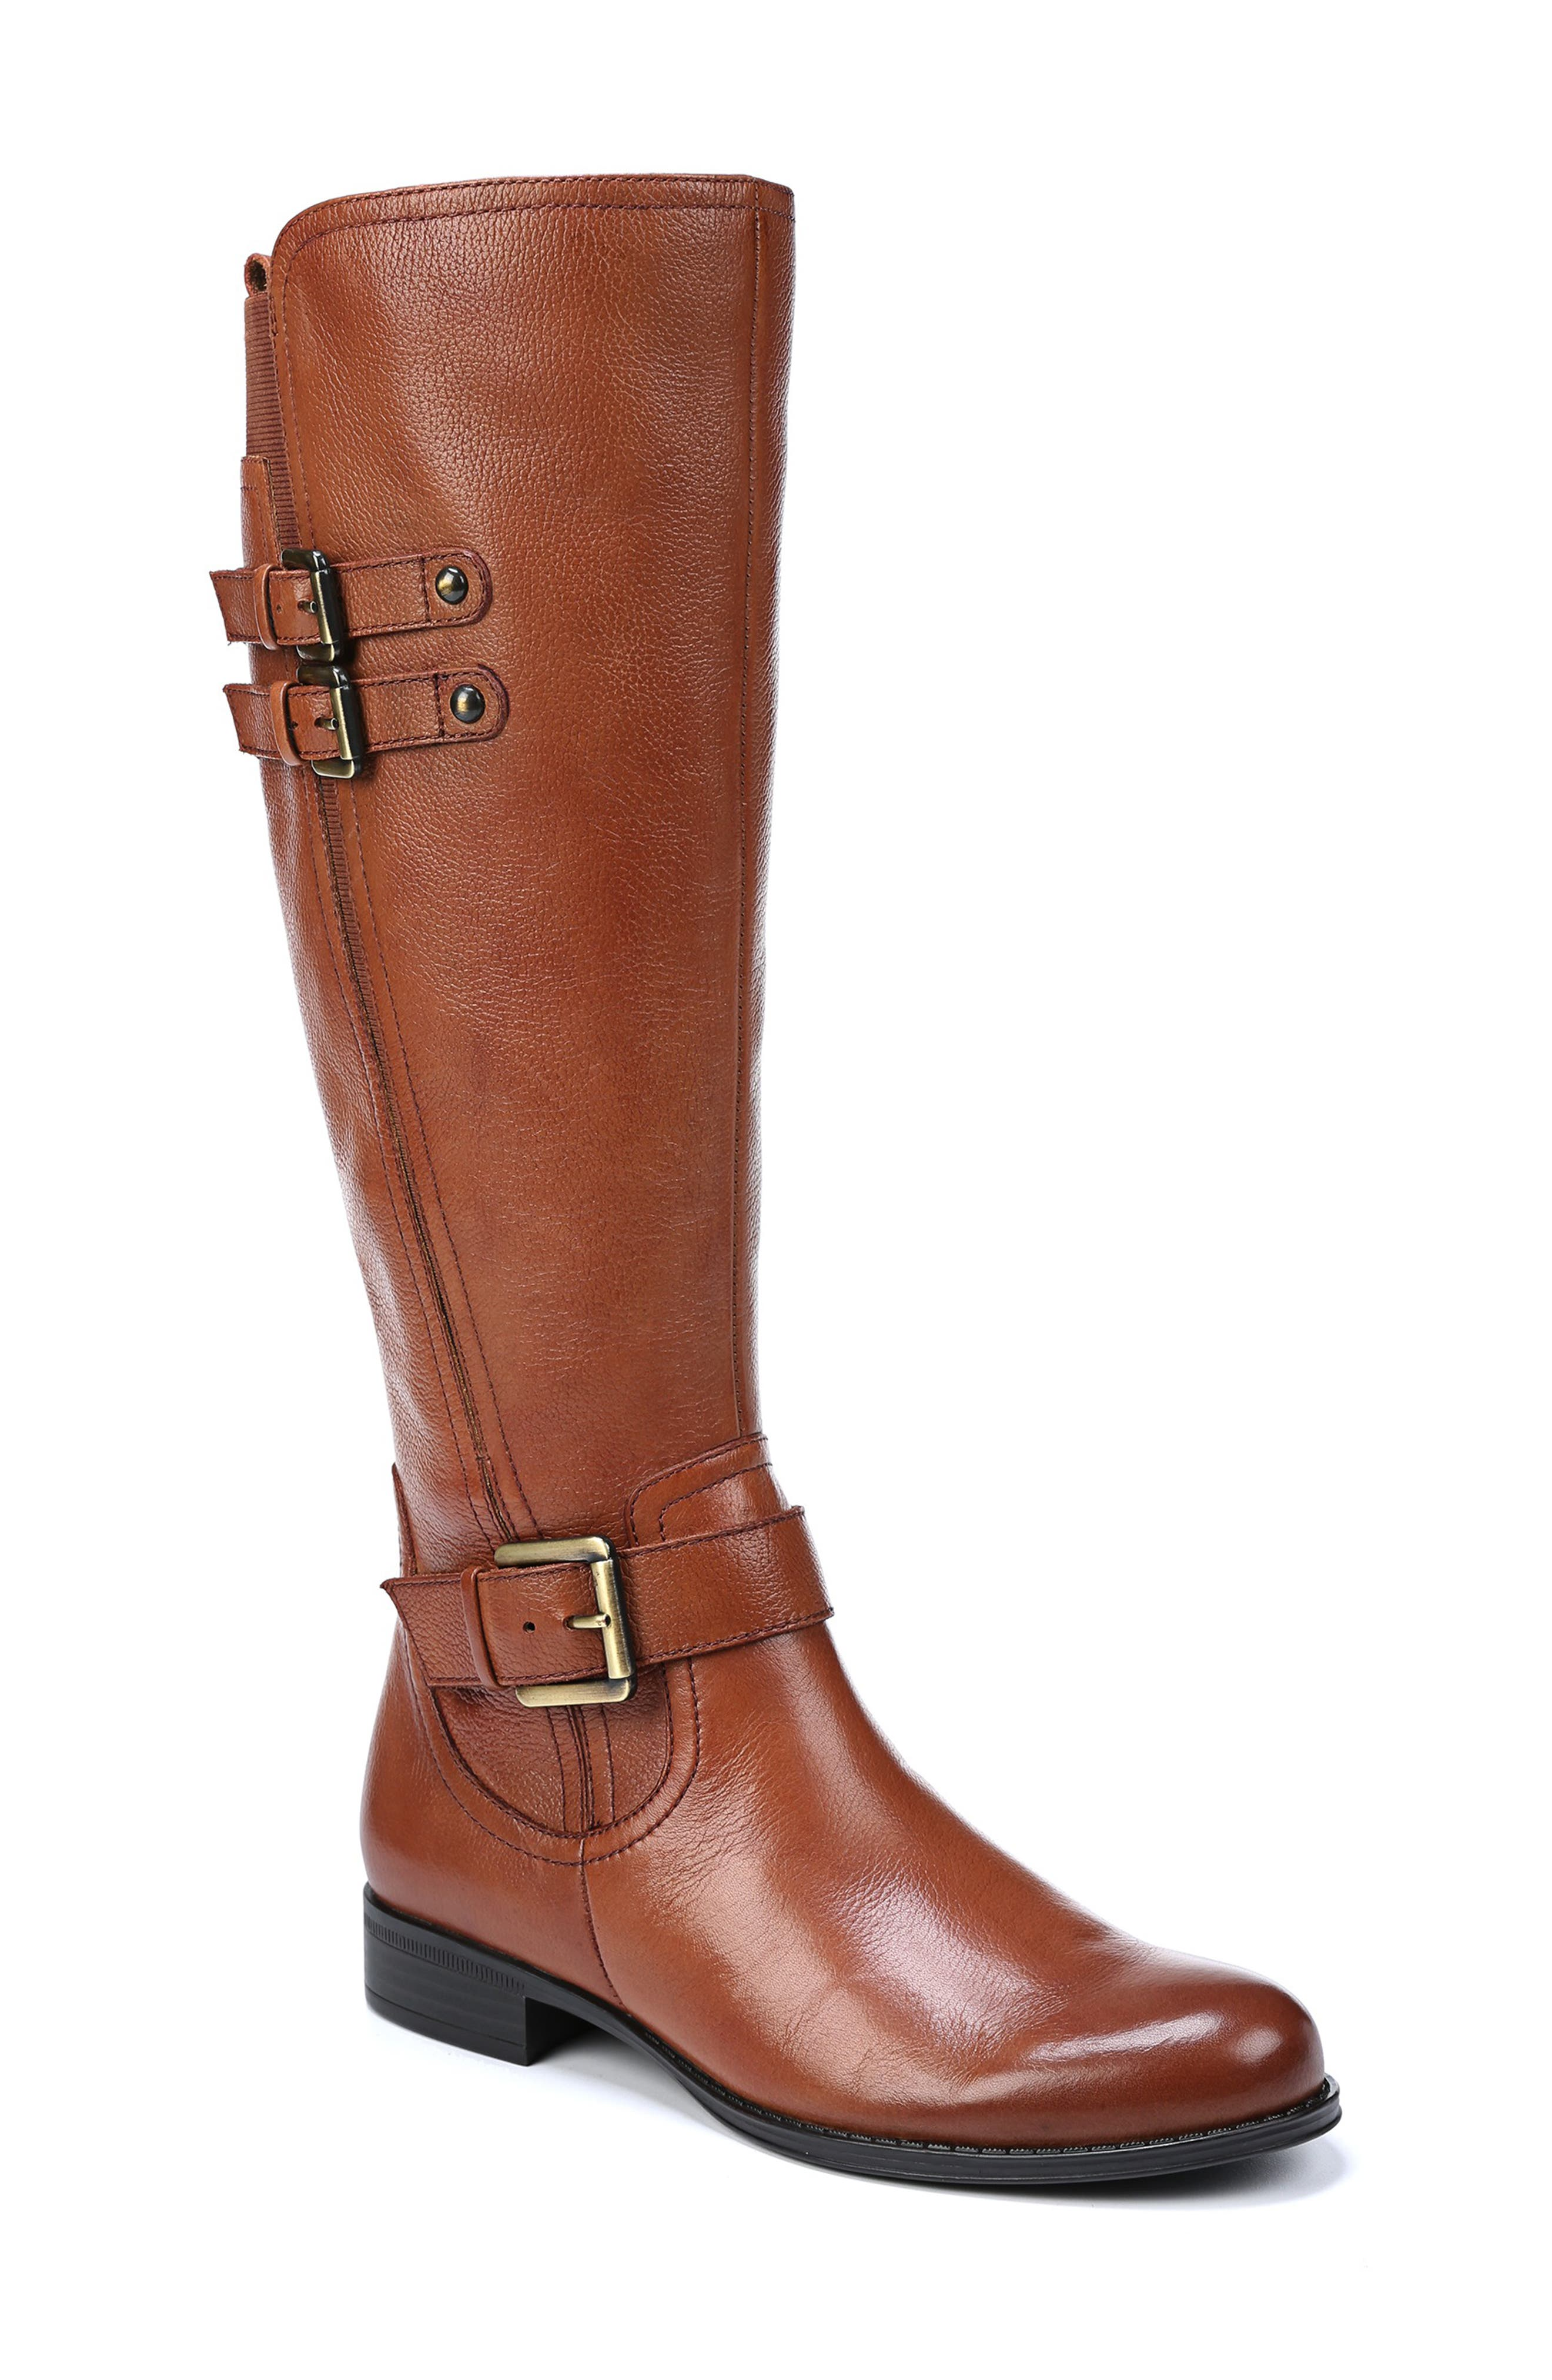 NATURALIZER, Jessie Knee High Riding Boot, Main thumbnail 1, color, BANANA BREAD LEATHER